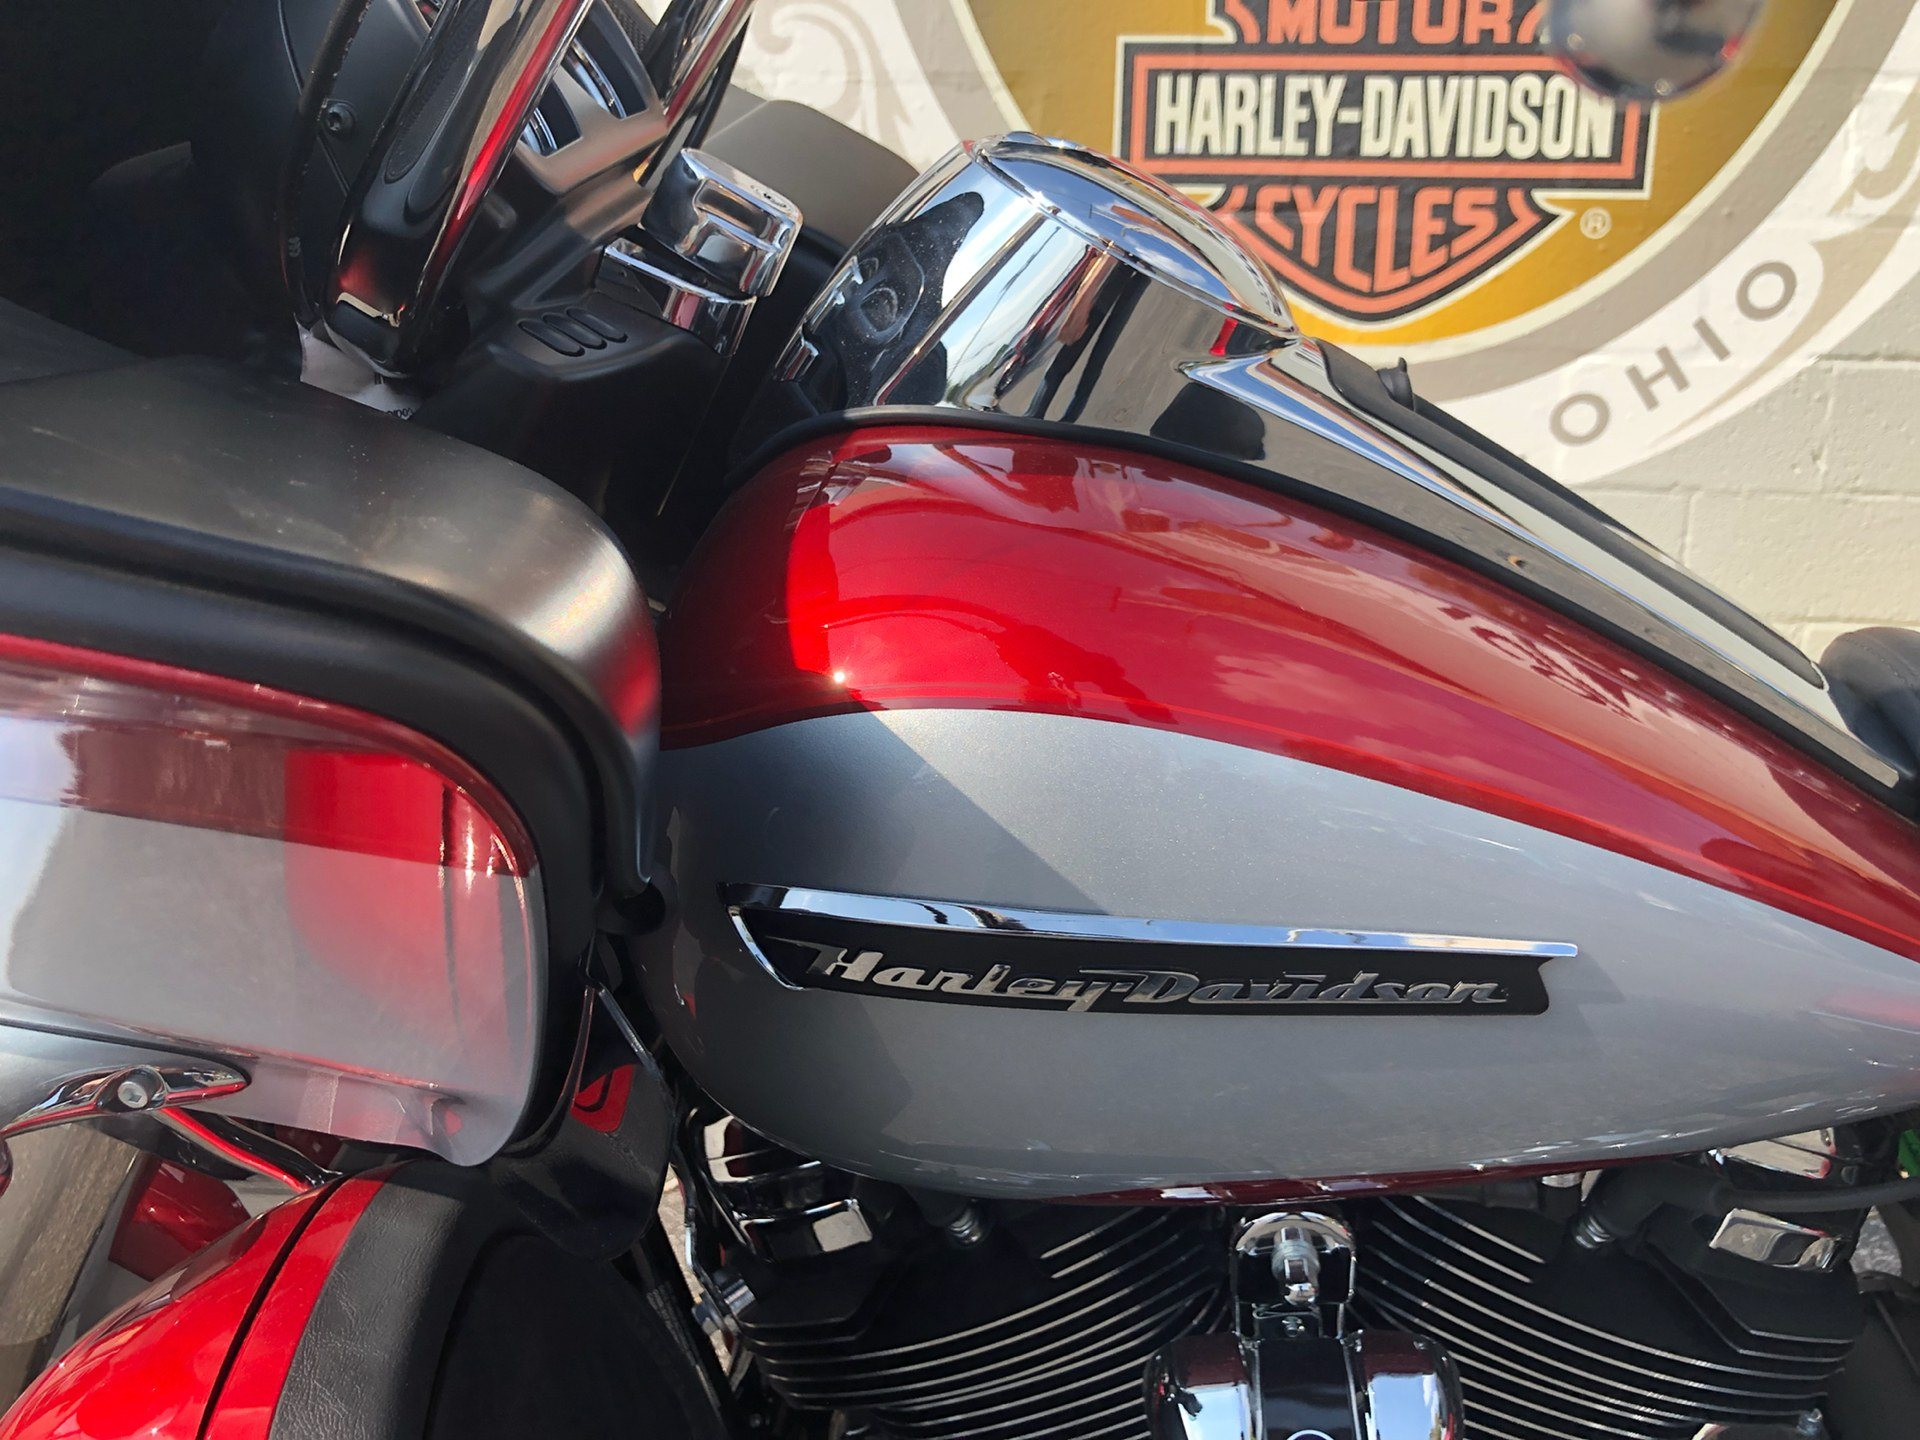 2019 Harley-Davidson FLTRU in Sunbury, Ohio - Photo 8